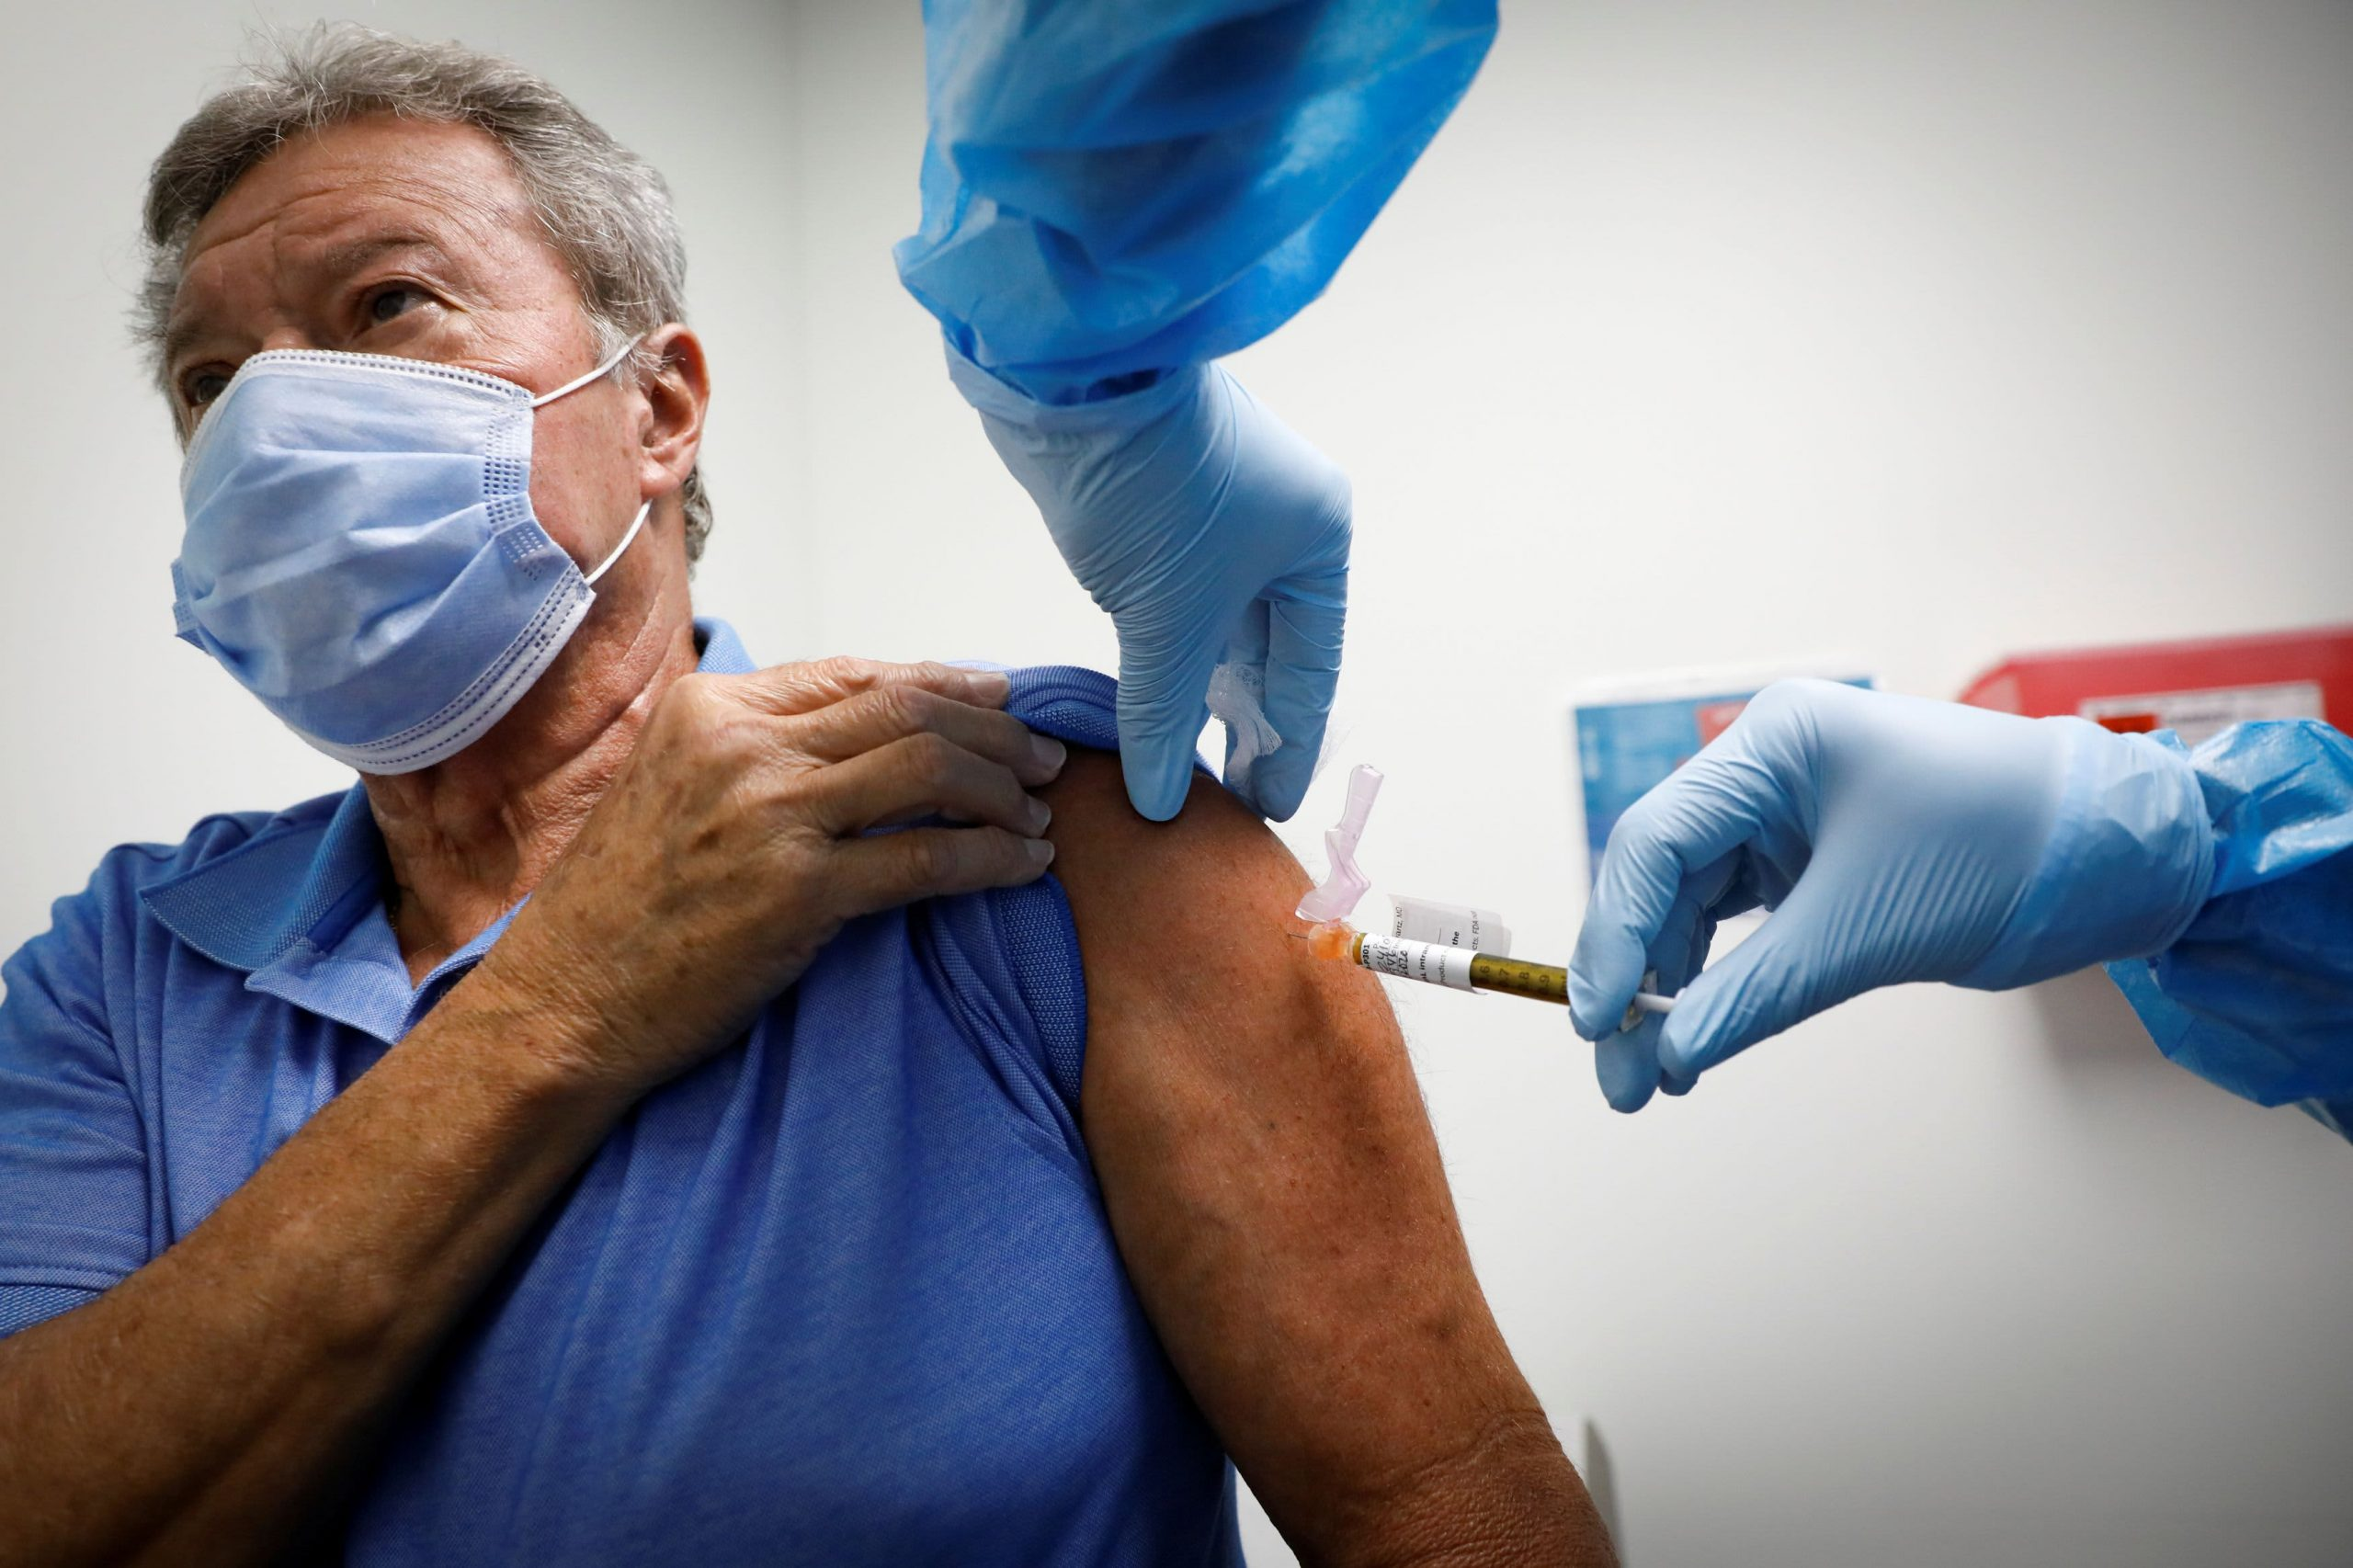 Doctors say CDC should warn people the side effects from Covid vaccine shots won't be 'a walk in the park'